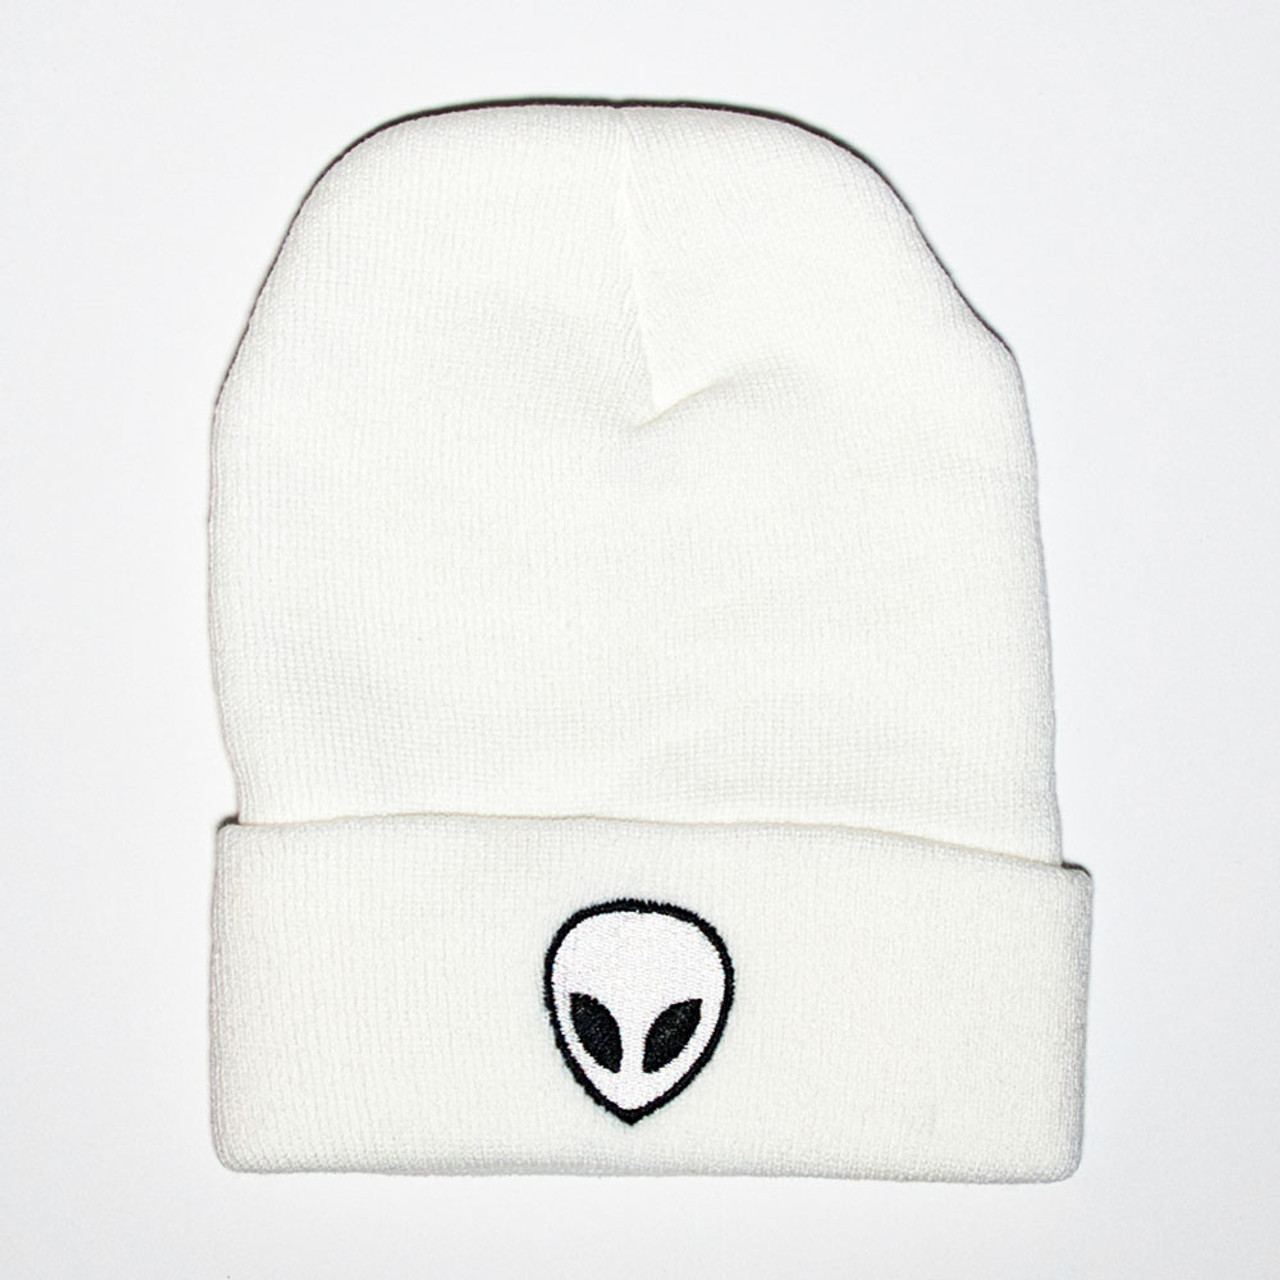 afe7167f417 Alien Beanie - White - The UFO Congress Store